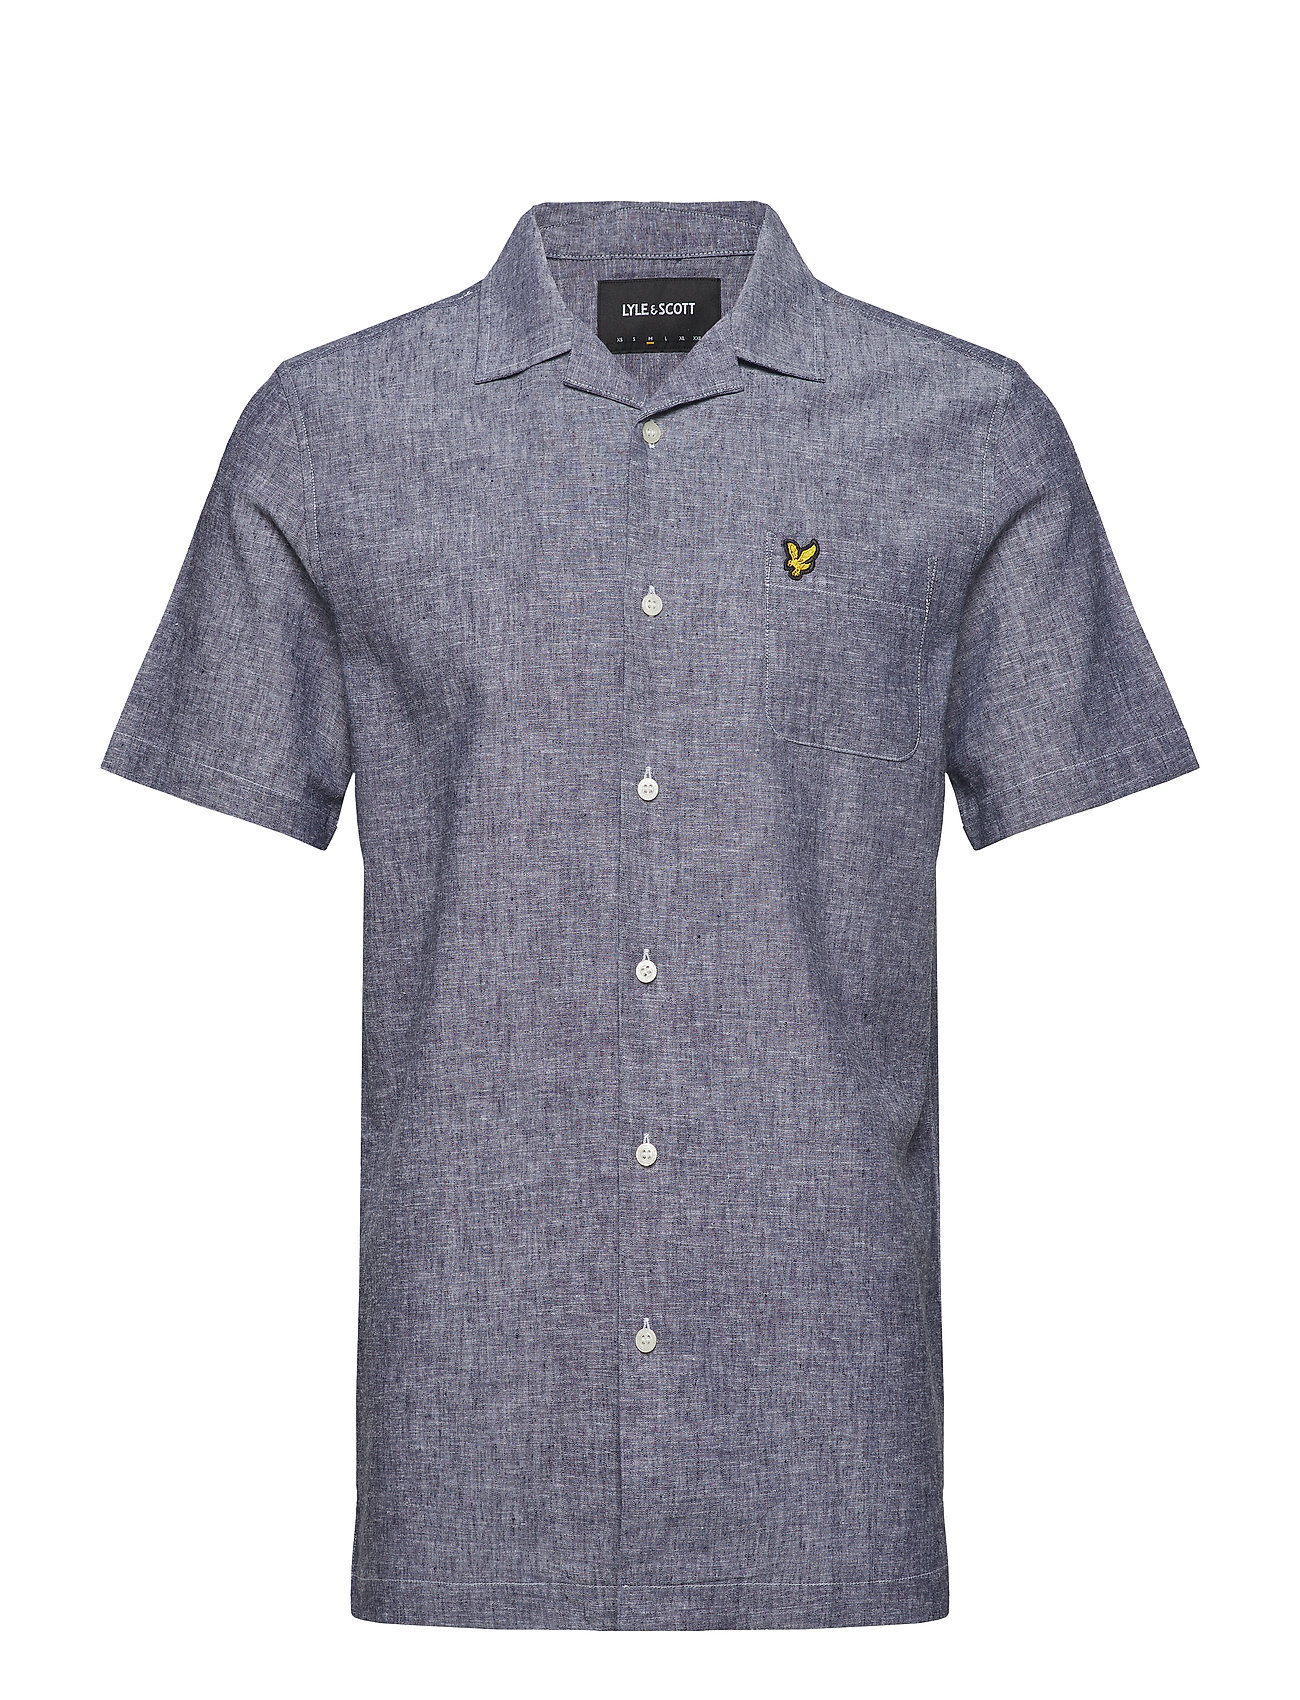 Lyle & Scott Cotton Linen Resort Shirt - NAVY